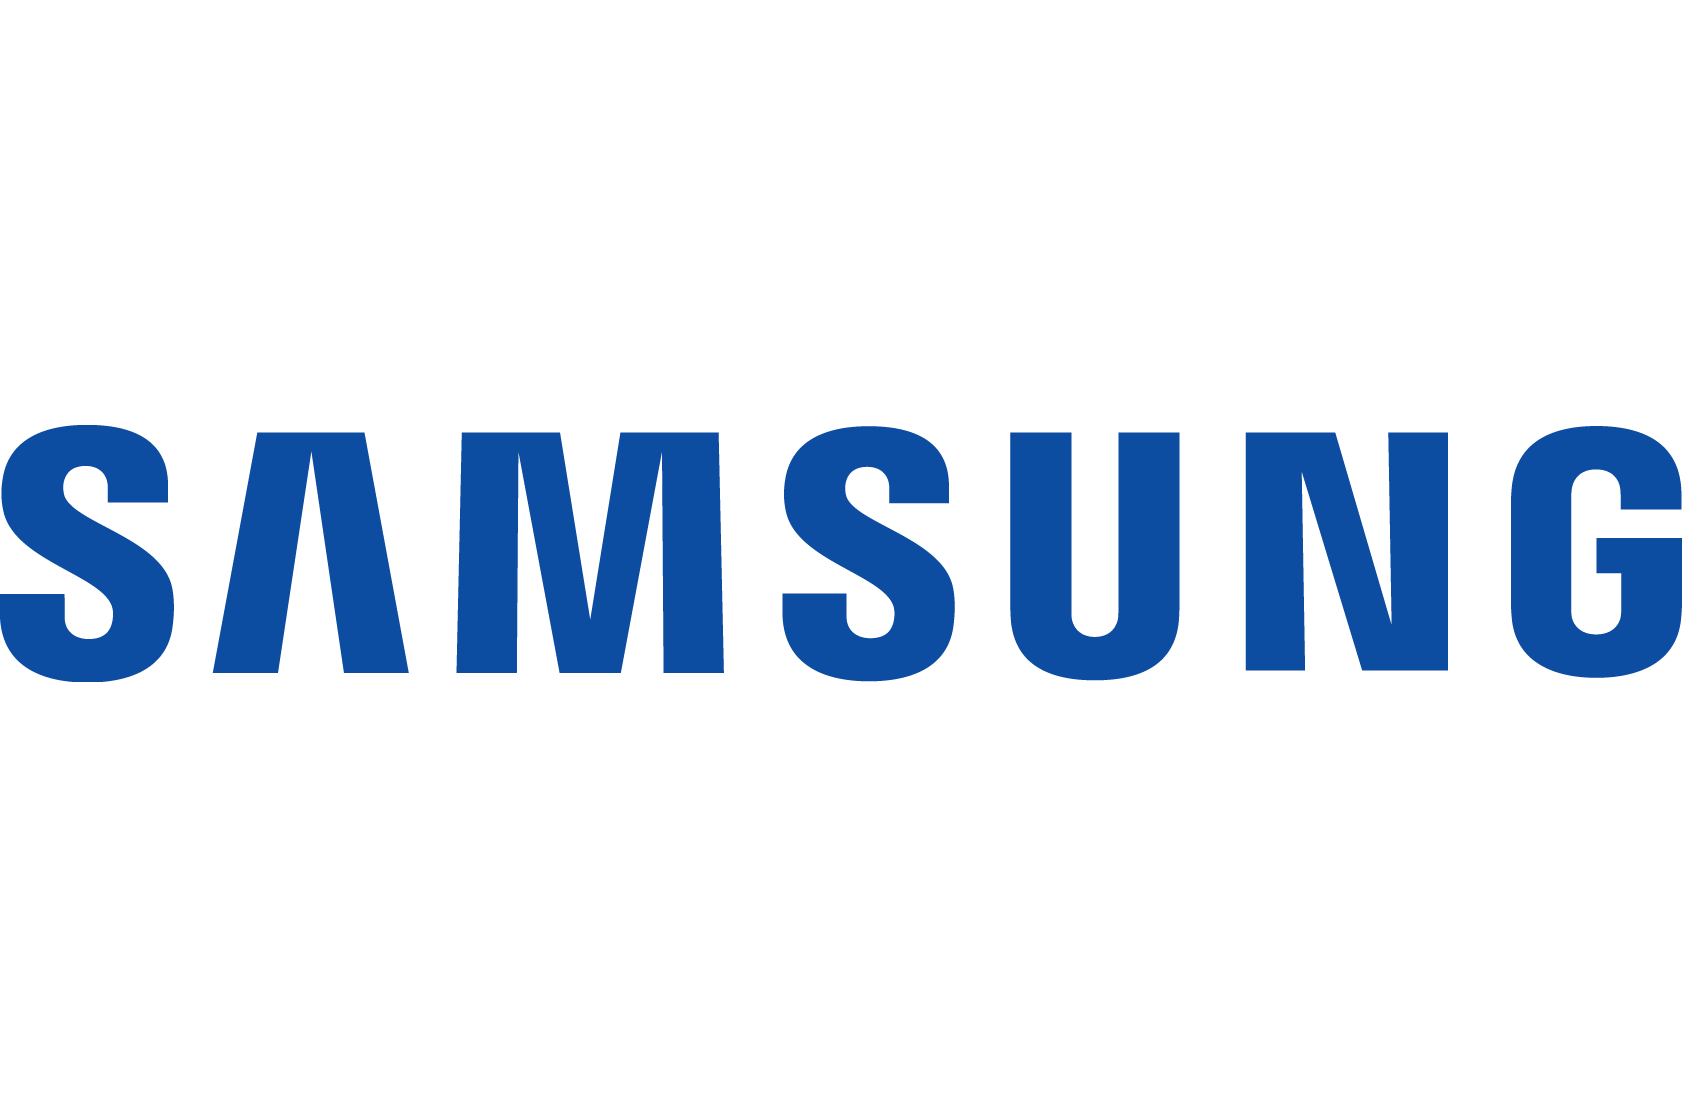 A Logo for Samsung, one of the world's largest producers of electronic devices